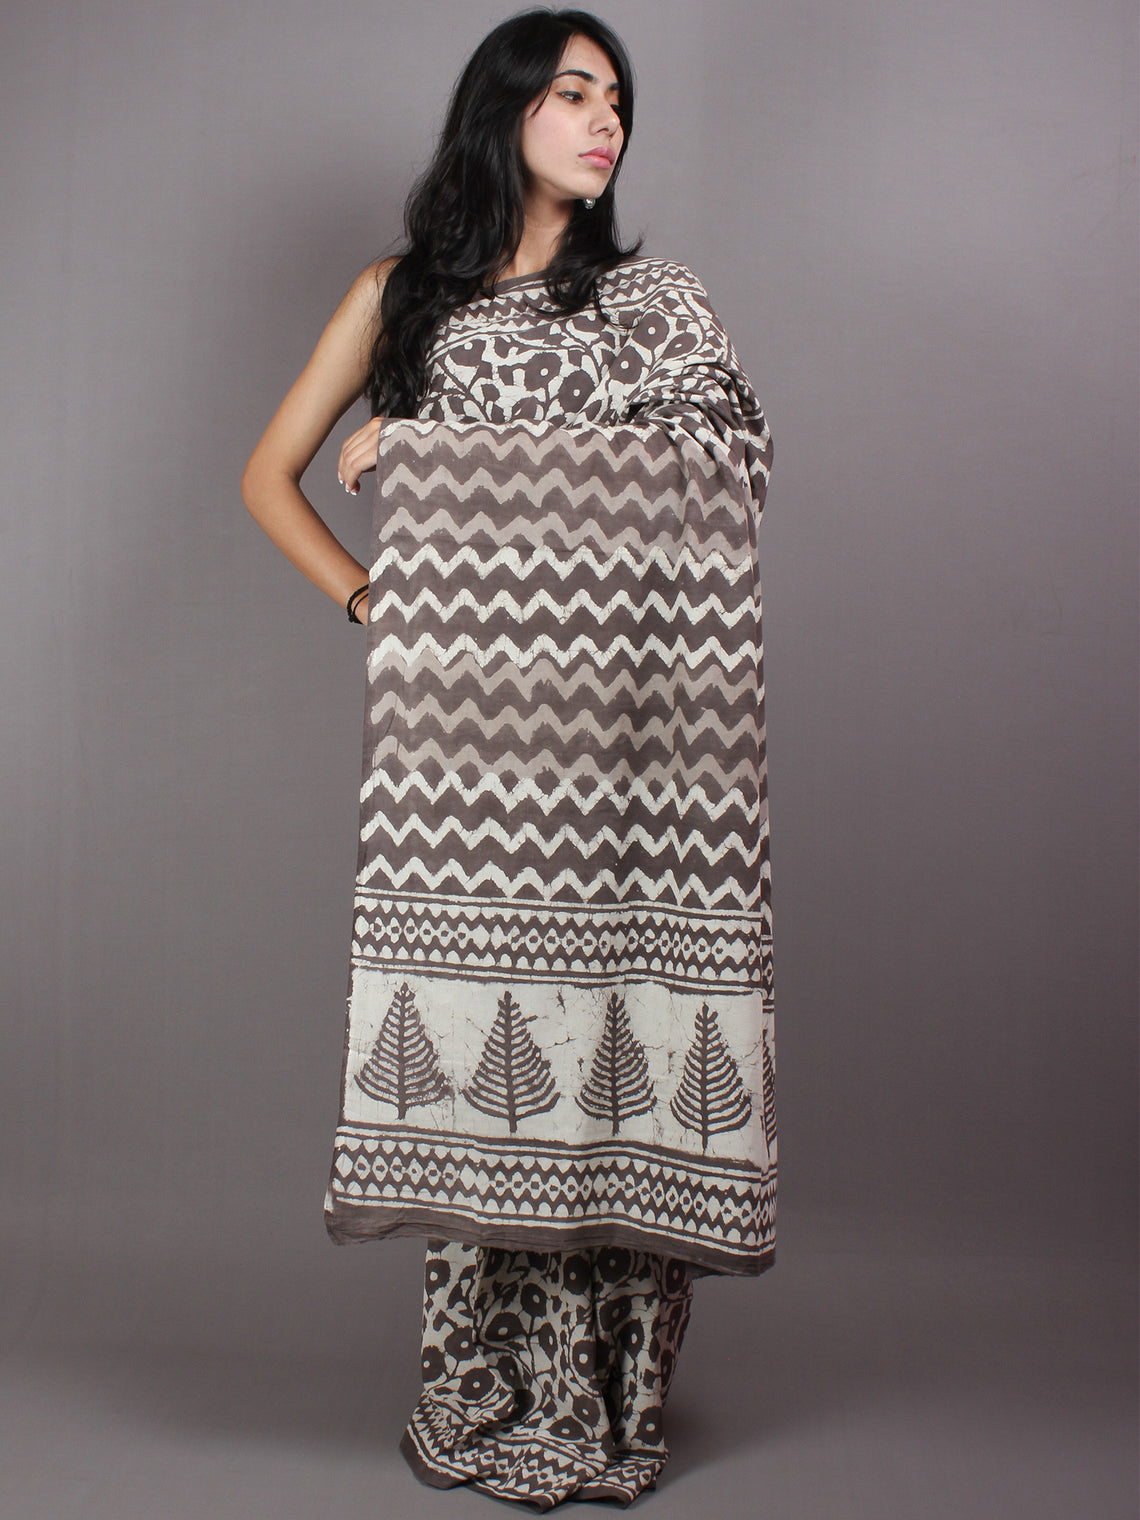 Brown Beige Hand Block Printed in Natural Colors Cotton Mul Saree - S03170421